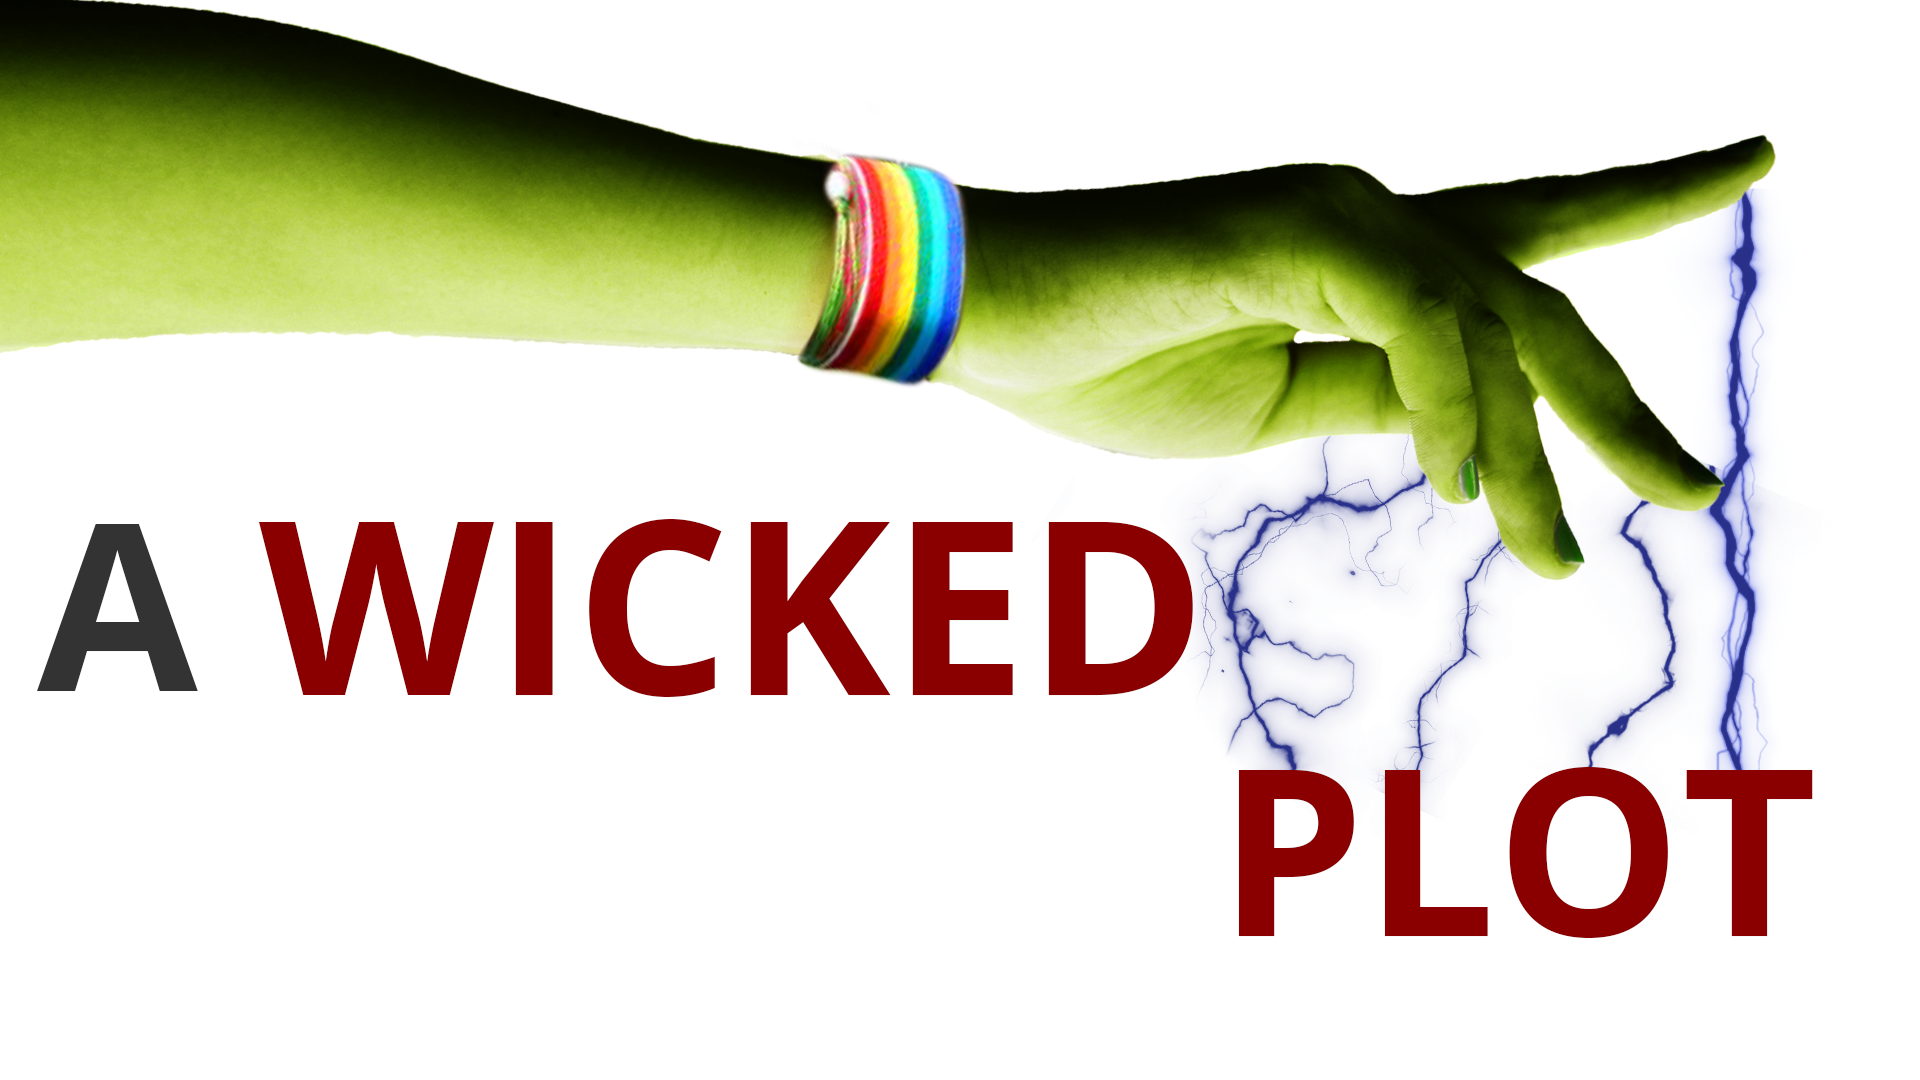 plot to wicked